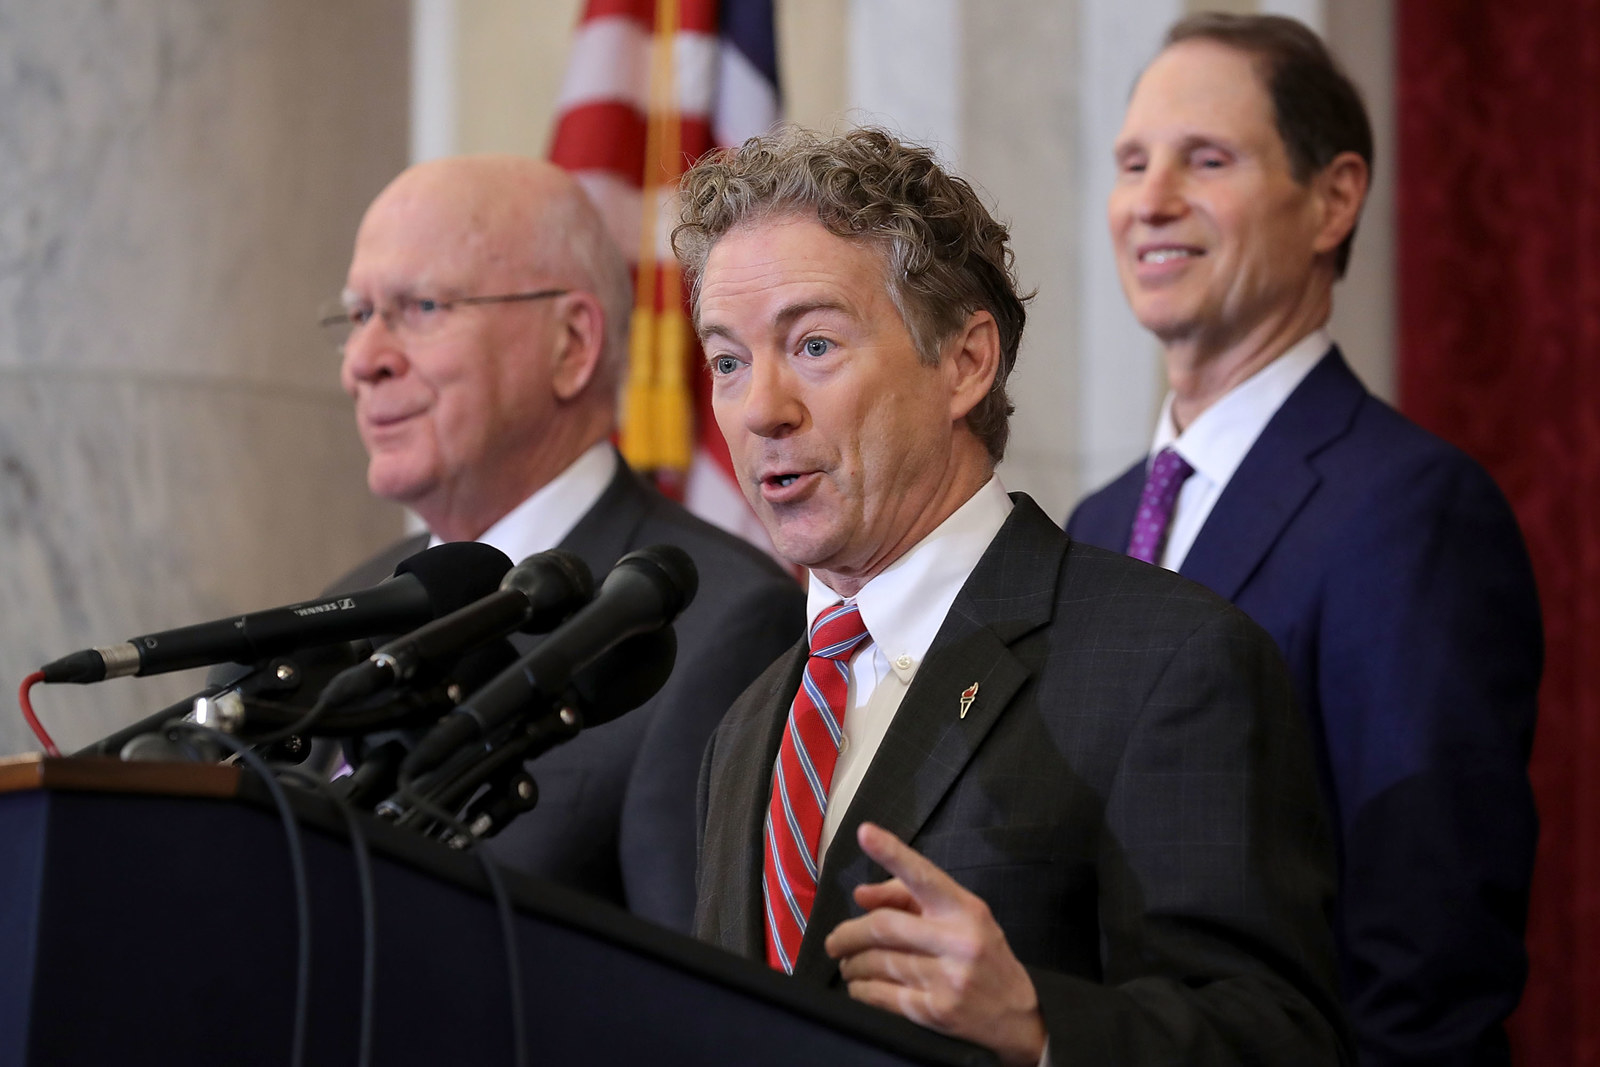 WASHINGTON, DC - JANUARY 16: Sen. Rand Paul (R-KY) (C) answers reporters questions during a news conference with Sen. Patrick Leahy (D-VT) (L) and Sen. Ron Wyden (D-OR) about their proposed reforms to the Foreign Intelligence Surveillance Act in the Russell Senate Office Building on Capitol Hill January 16, 2018 in Washington, DC. The senators are part of a bipartisan group that supports legislation they say would protect Americans from foreign threats while preserving their privacy.